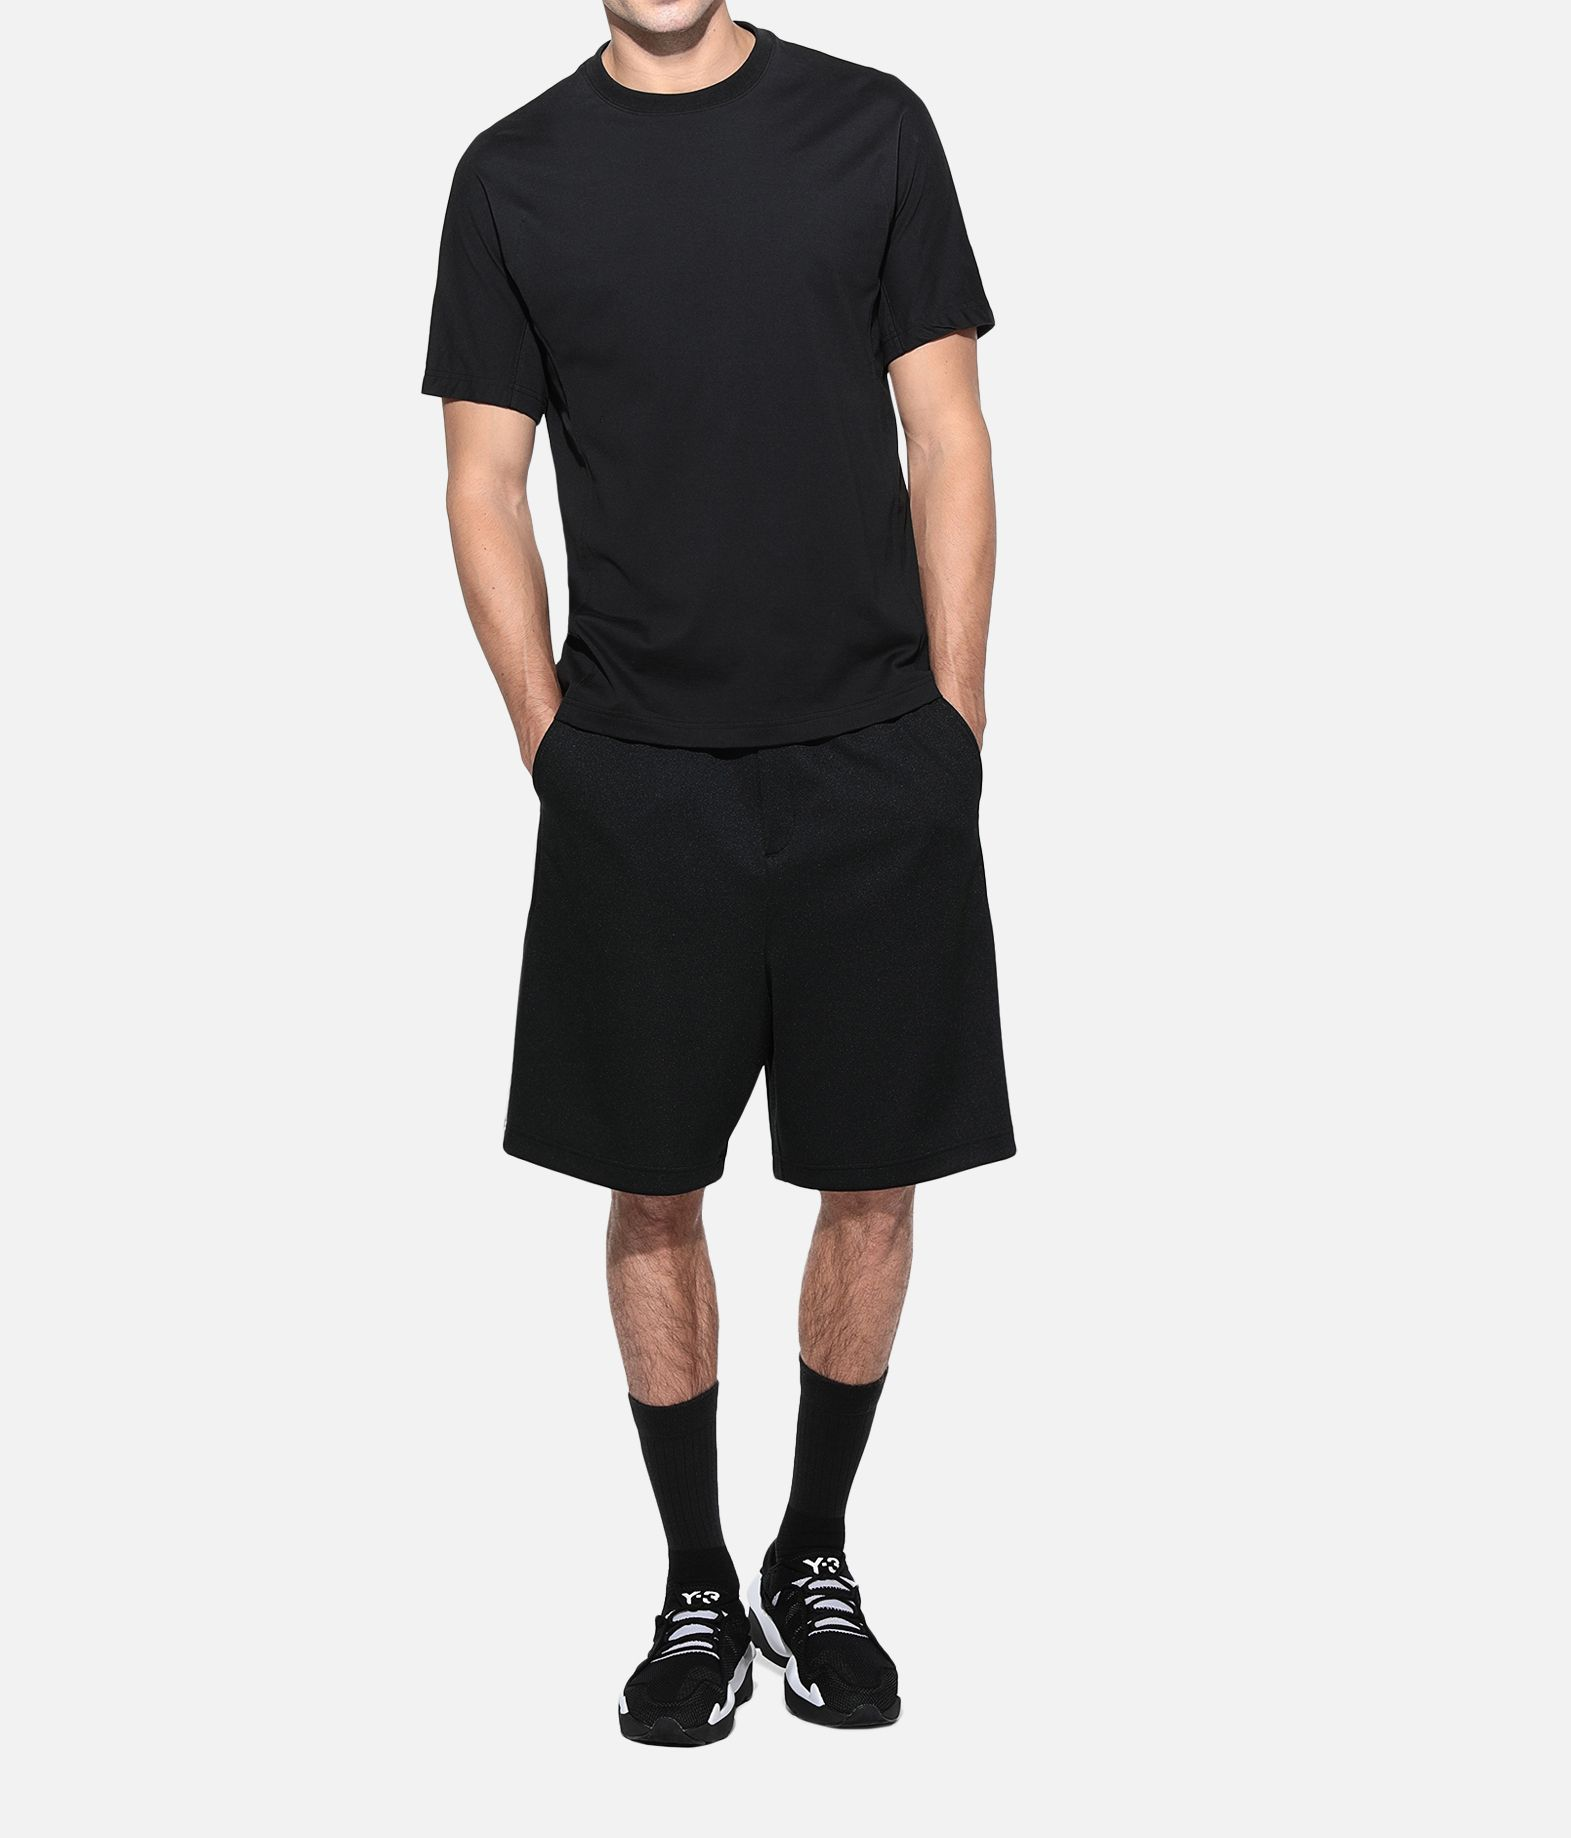 Y-3 Y-3 3-Stripes Track Shorts Track pant Man a